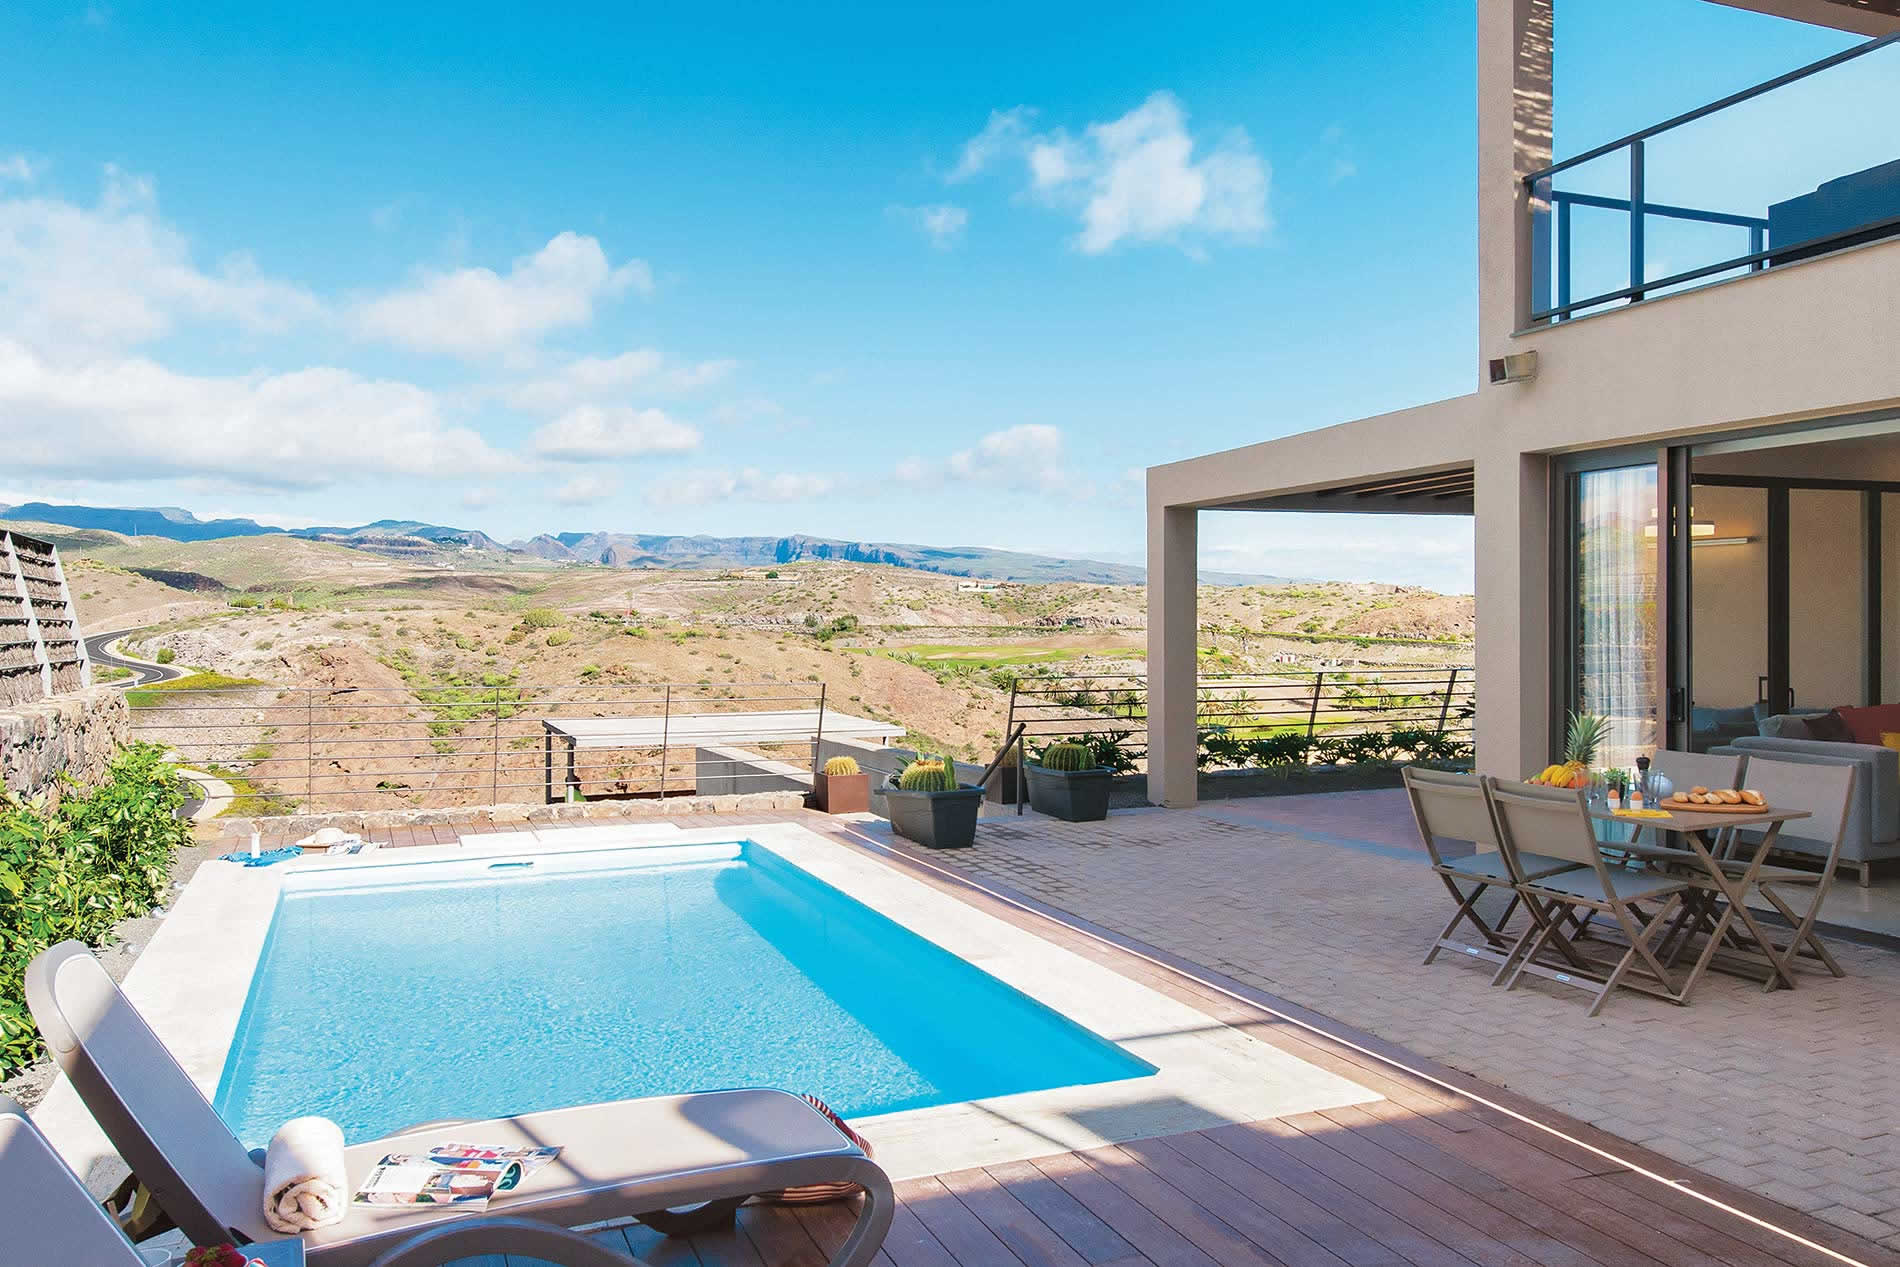 Villa Las Terrazas 14 in Salobre Golf Resort - sleeps 4 people